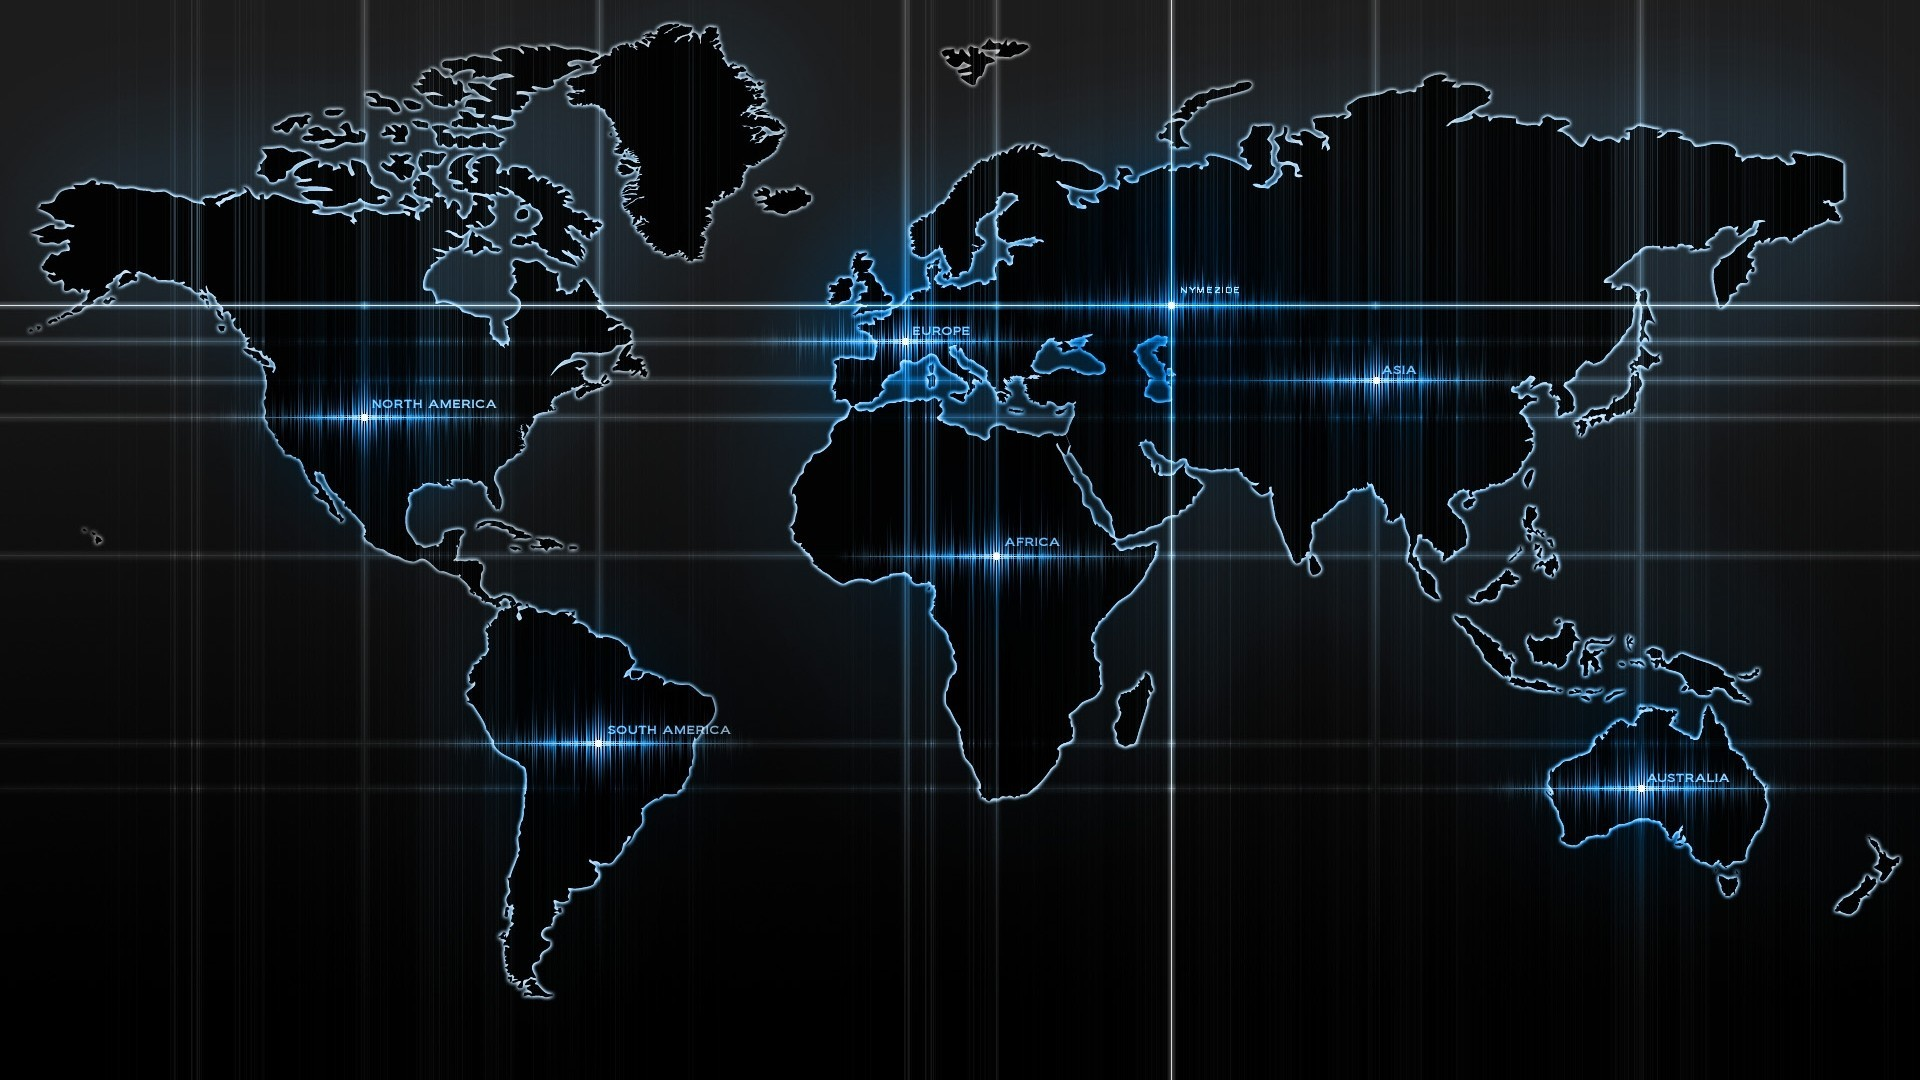 Res: 1920x1080, World Map Wallpaper Hd 1366x768 Fresh Black Carbon Wallpaper Collection 62  New High Quality Wallpapers Hi